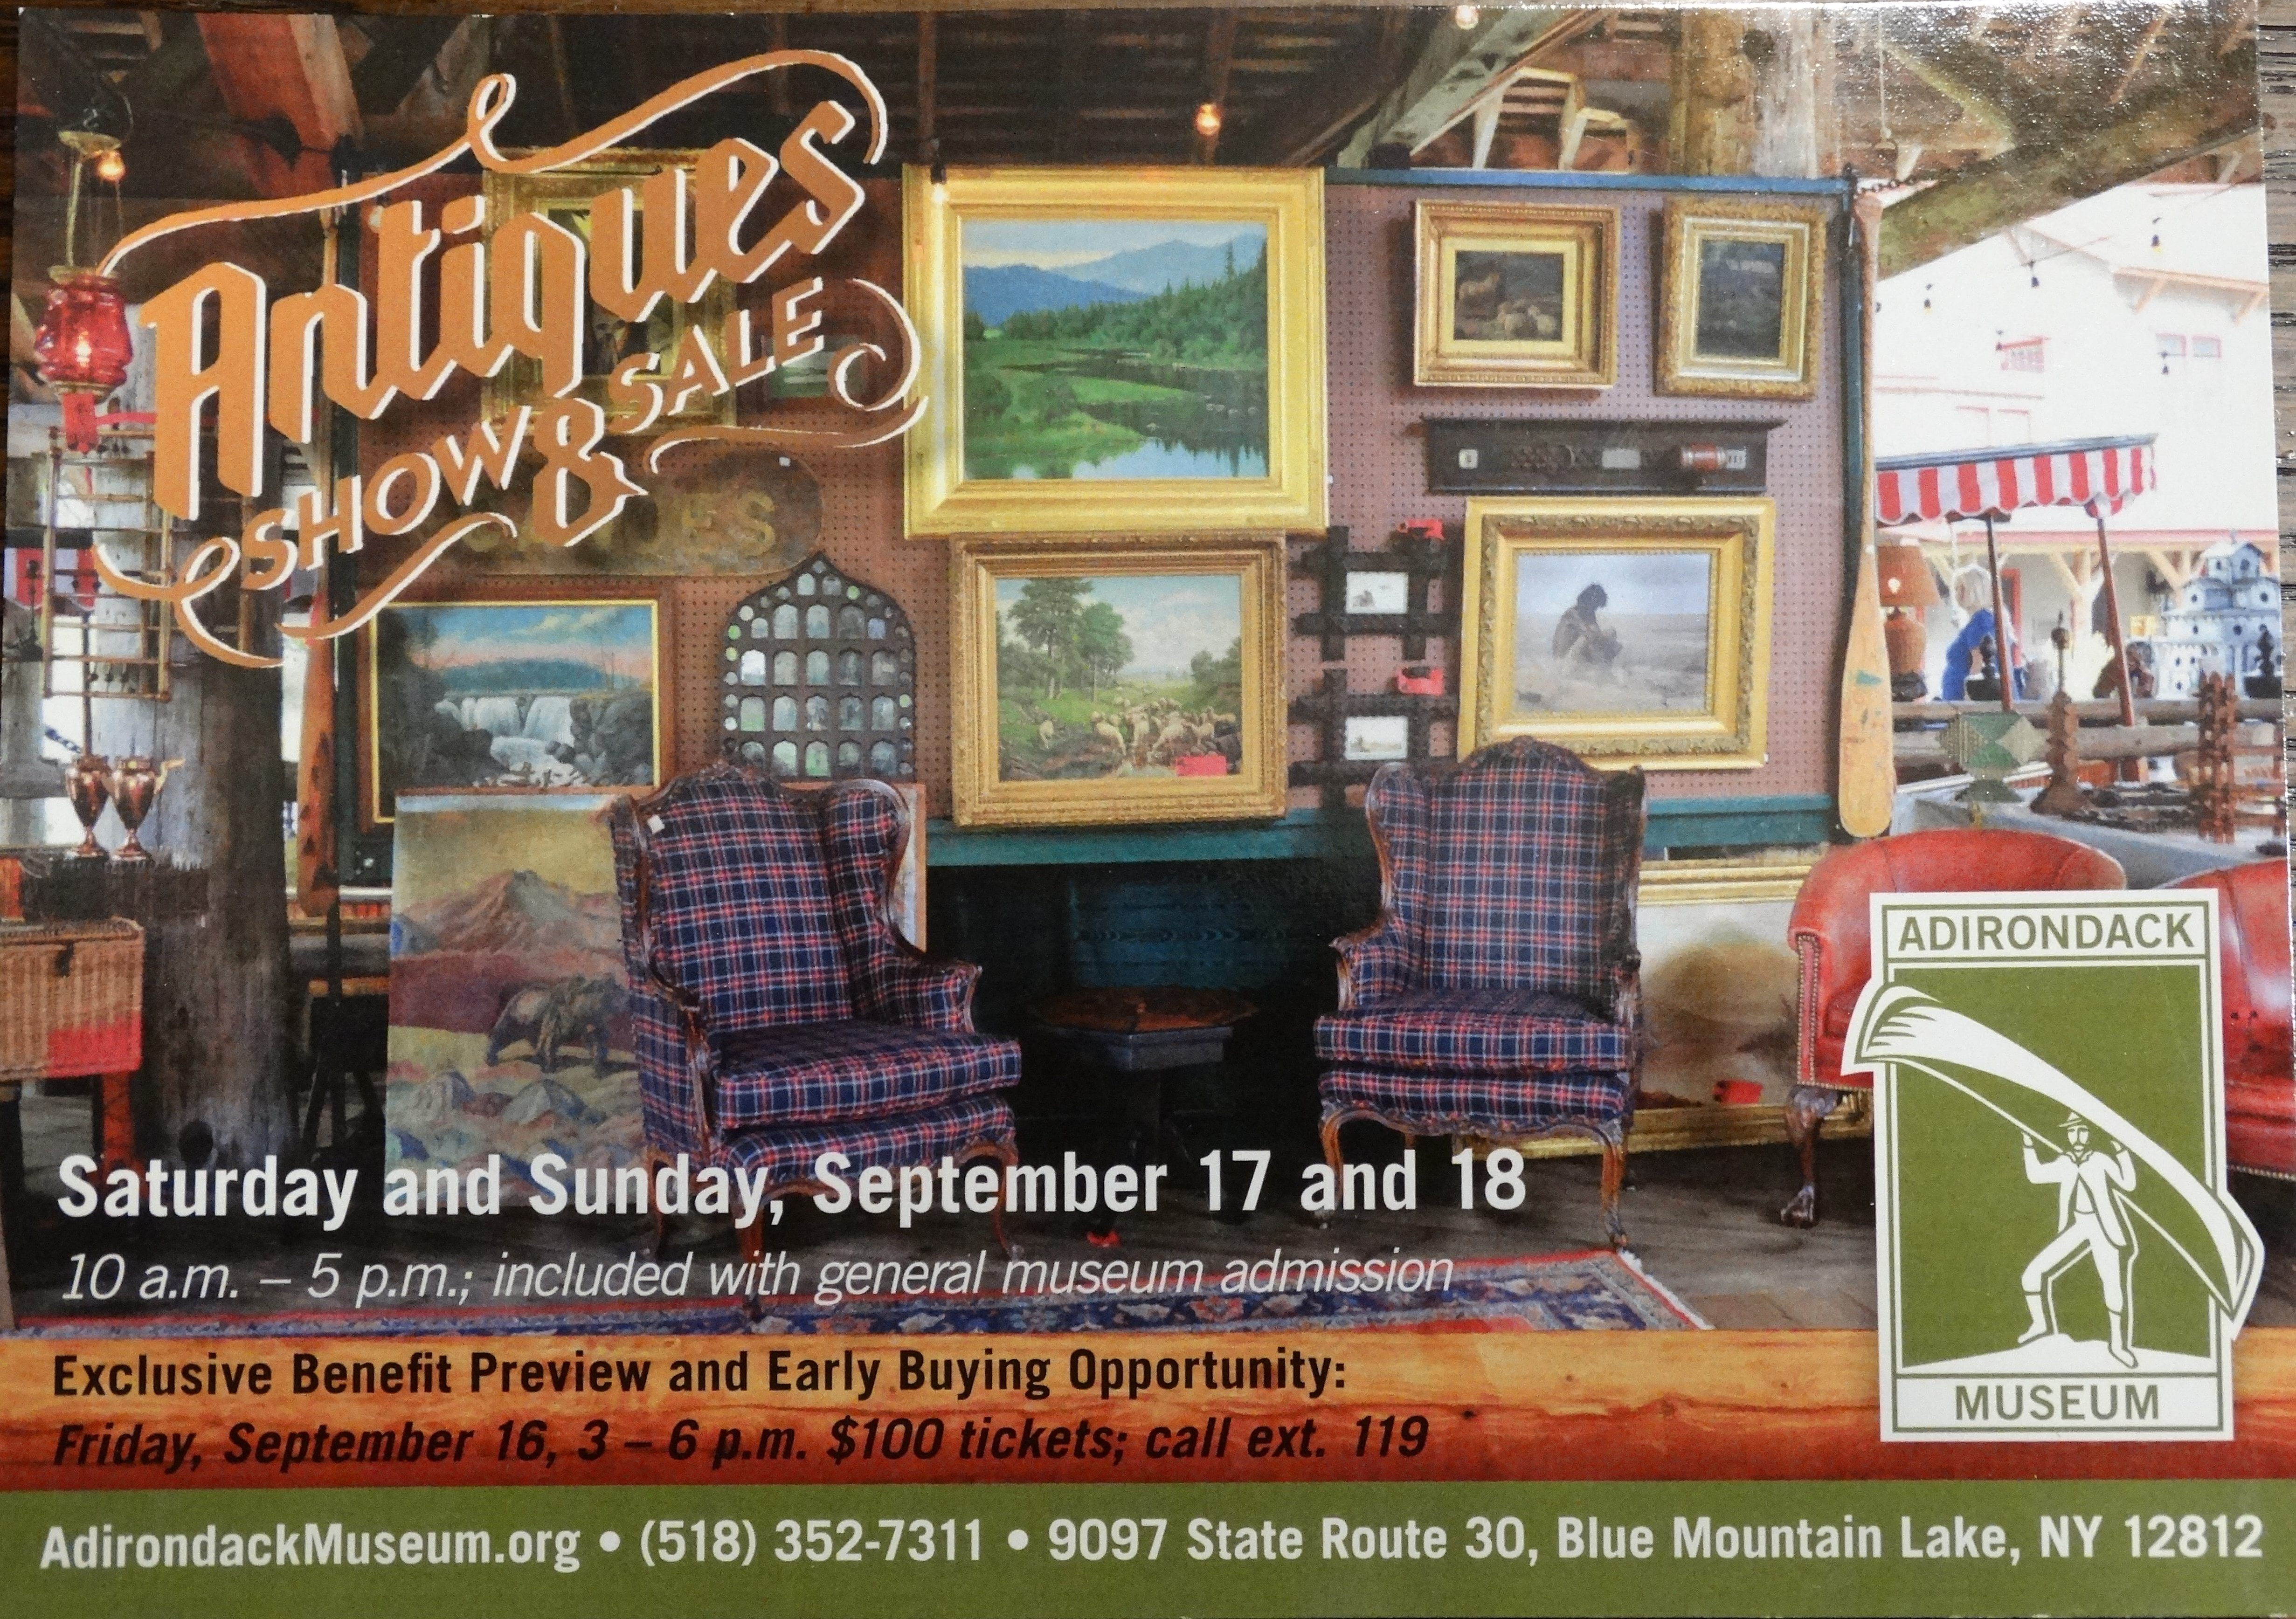 Adirondack Museum Antiques Show and Sale 9097 State Route 30, Blue Mountain Lake, NY 12812 AdirondackMuseum.org